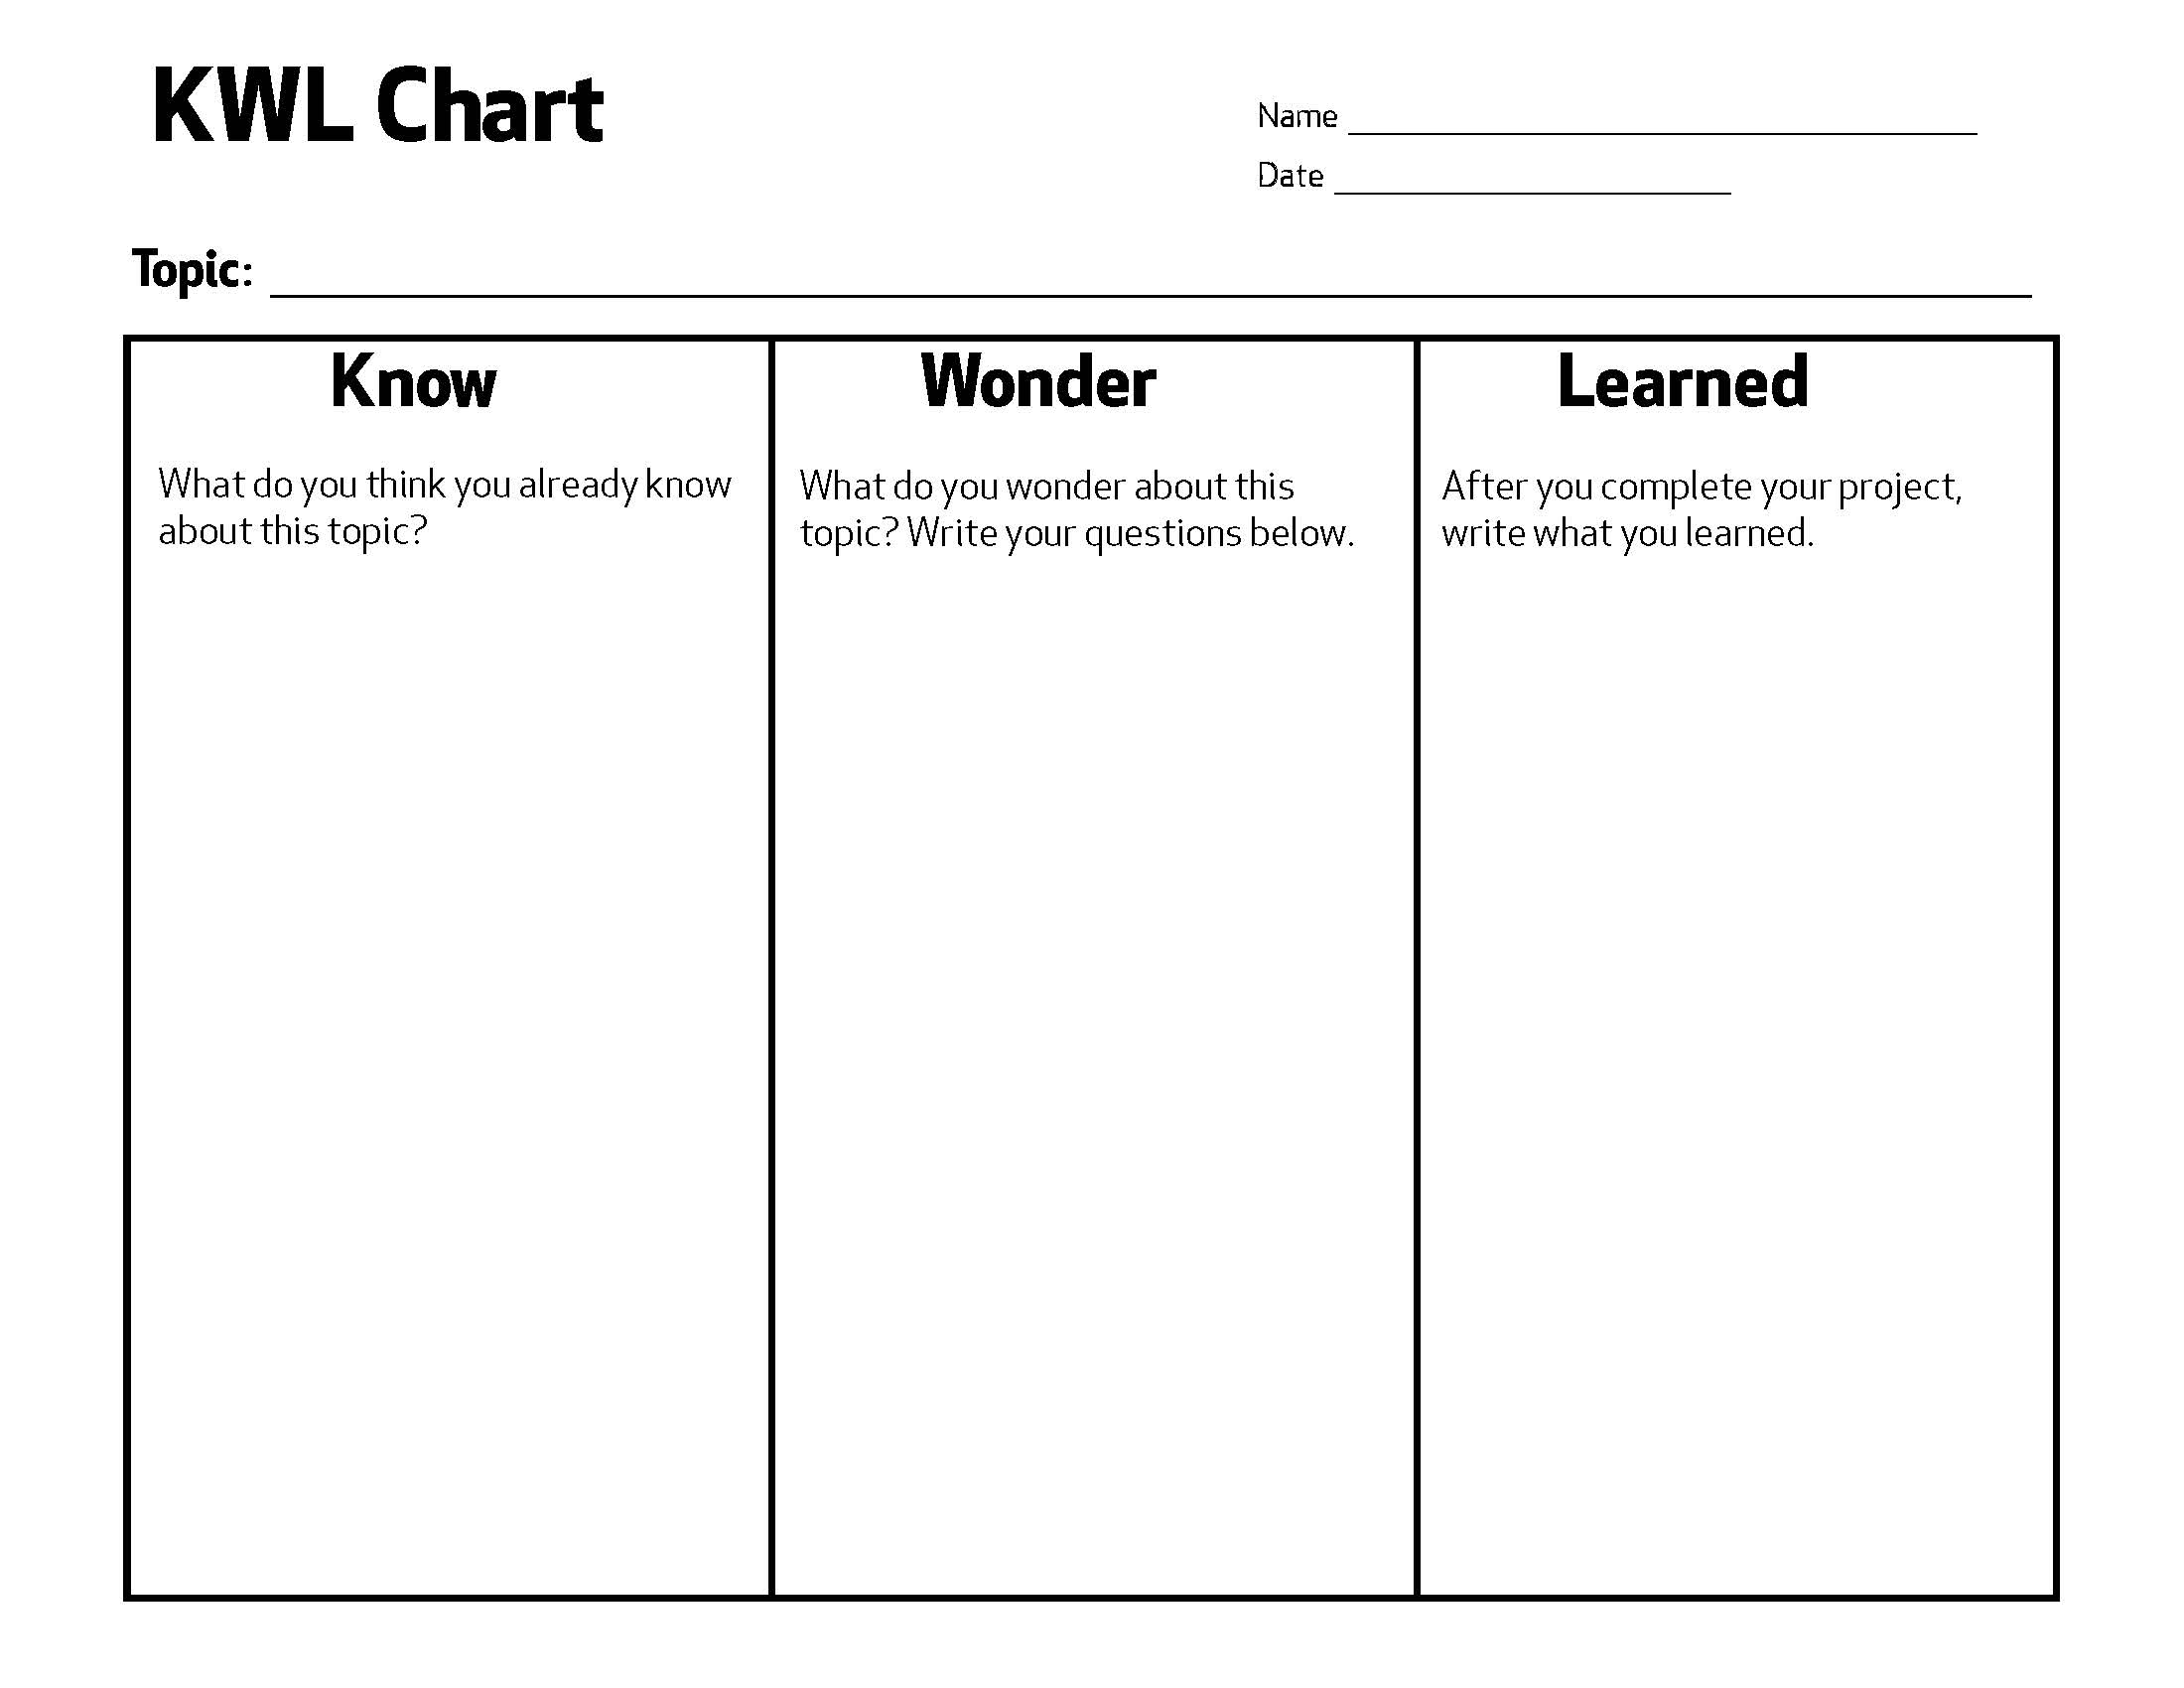 photograph regarding Kwl Chart Printable named History:KWL Chart.jpg - Wikimedia Commons